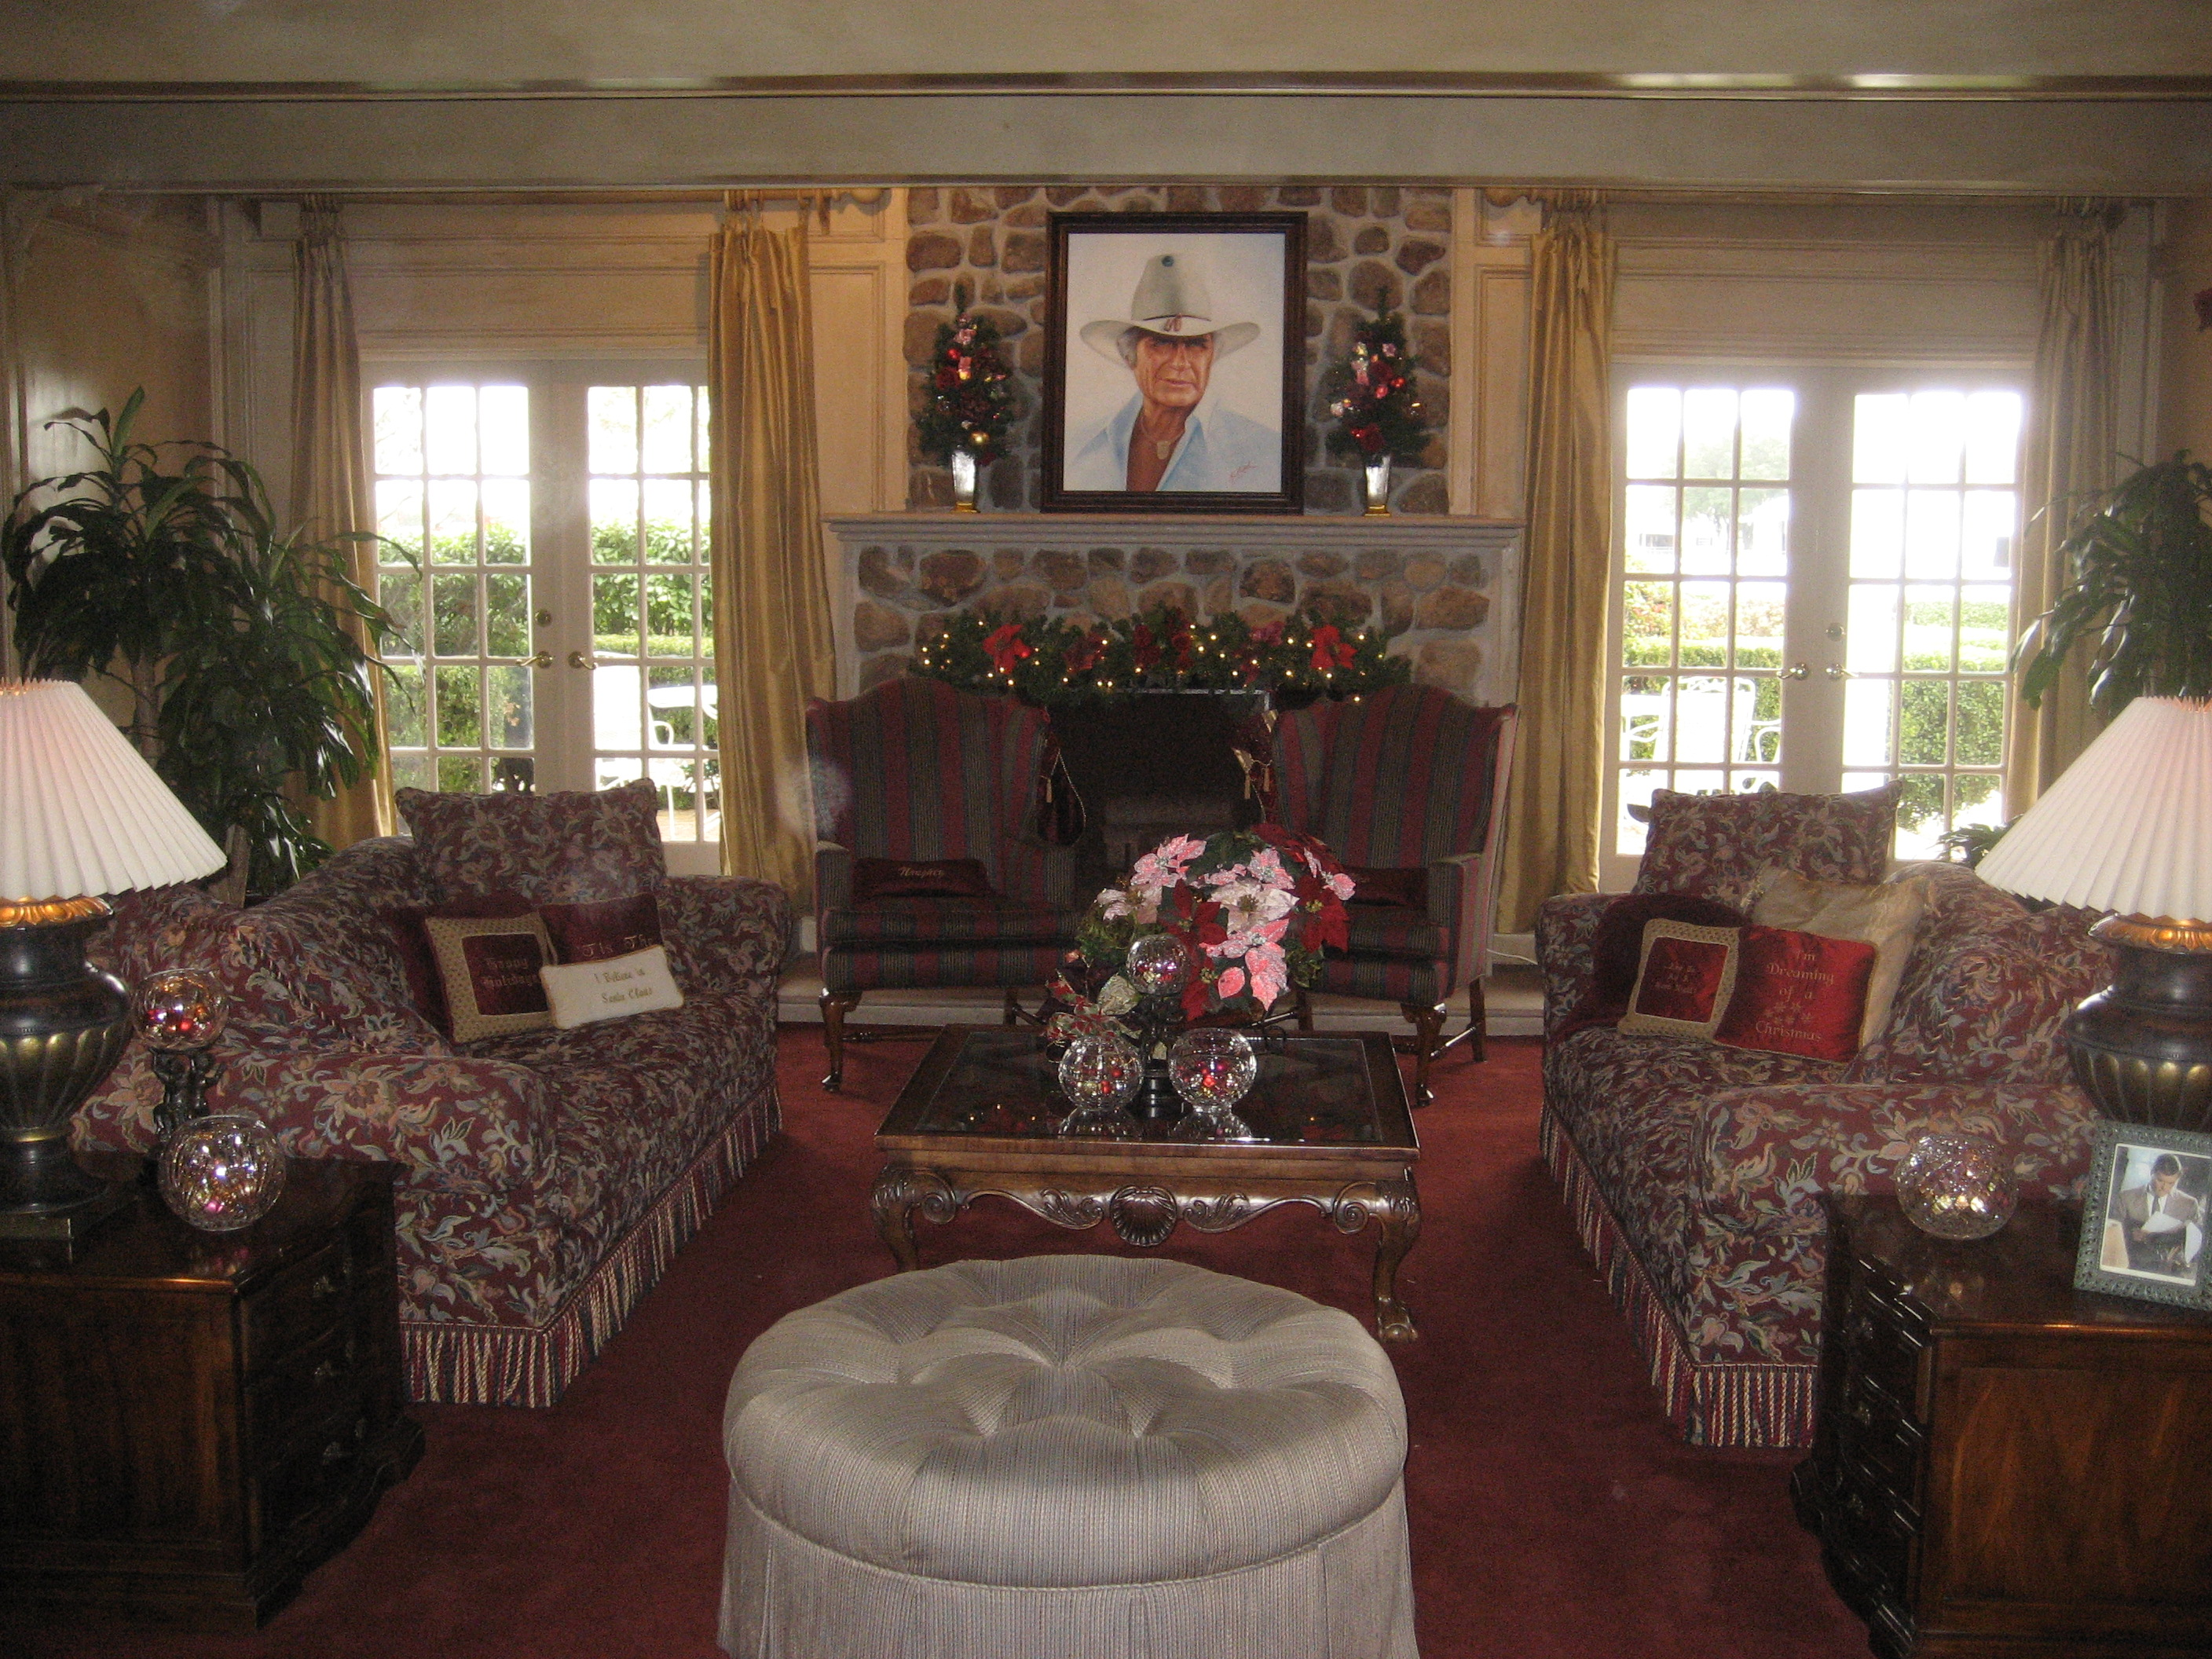 Minnie Mouse Bedroom Decorations Inside Southfork Part 3 Not So Nerdy Trip Nerd Trips